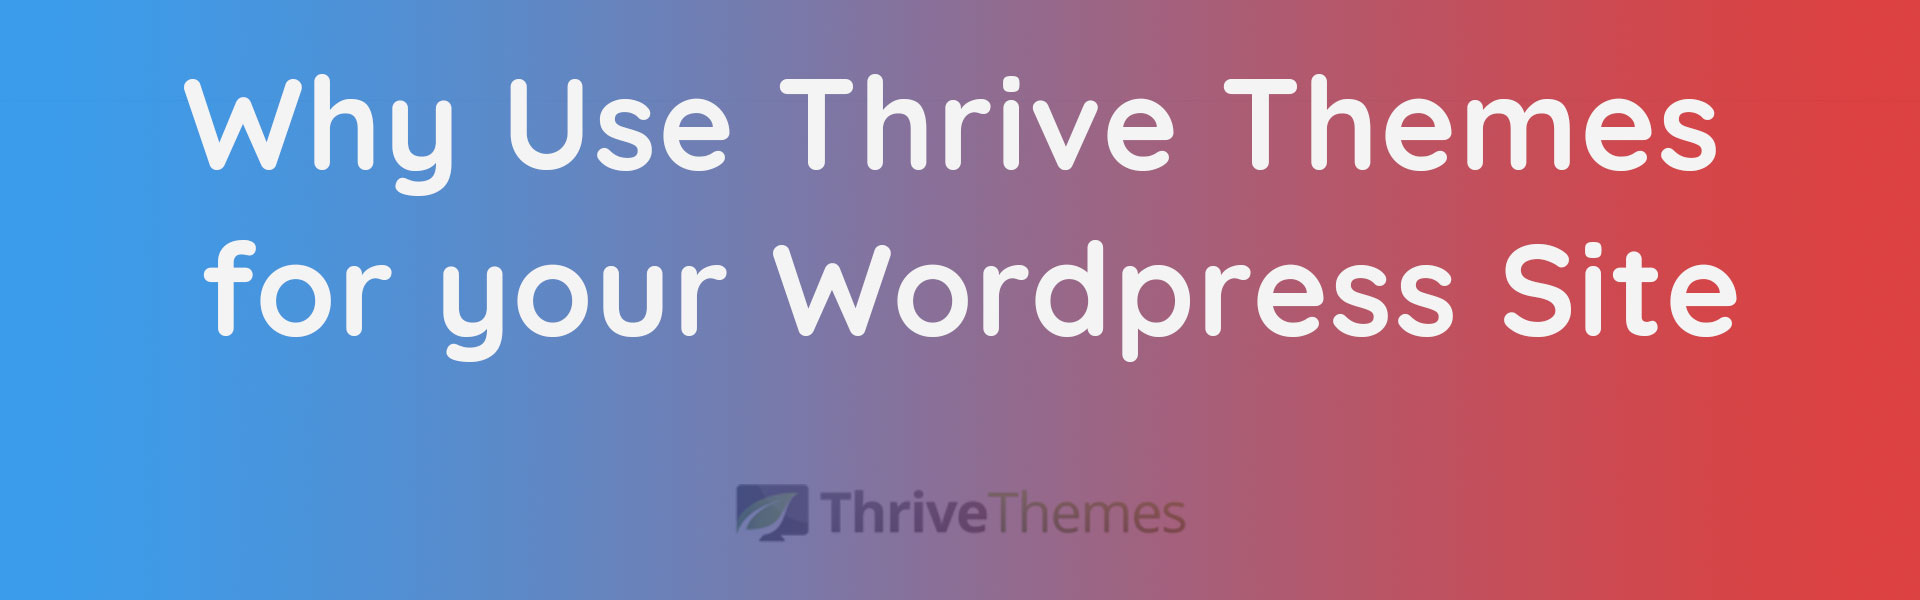 Thrive Themes Launch